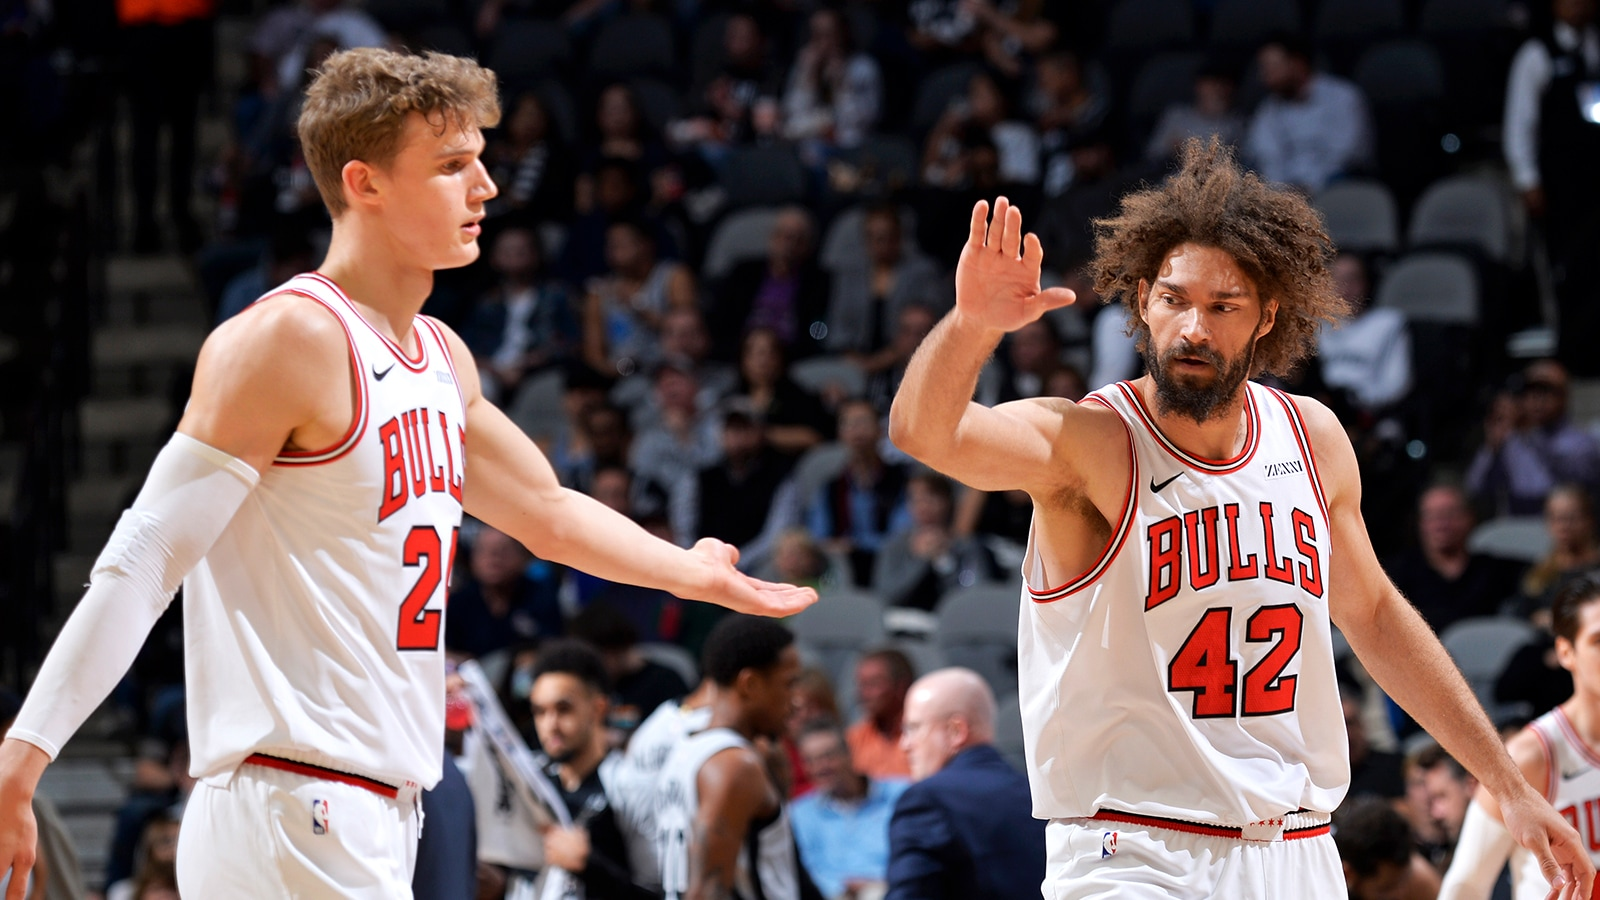 Bulls erase 21 point deficit to beat the Spurs 98-93